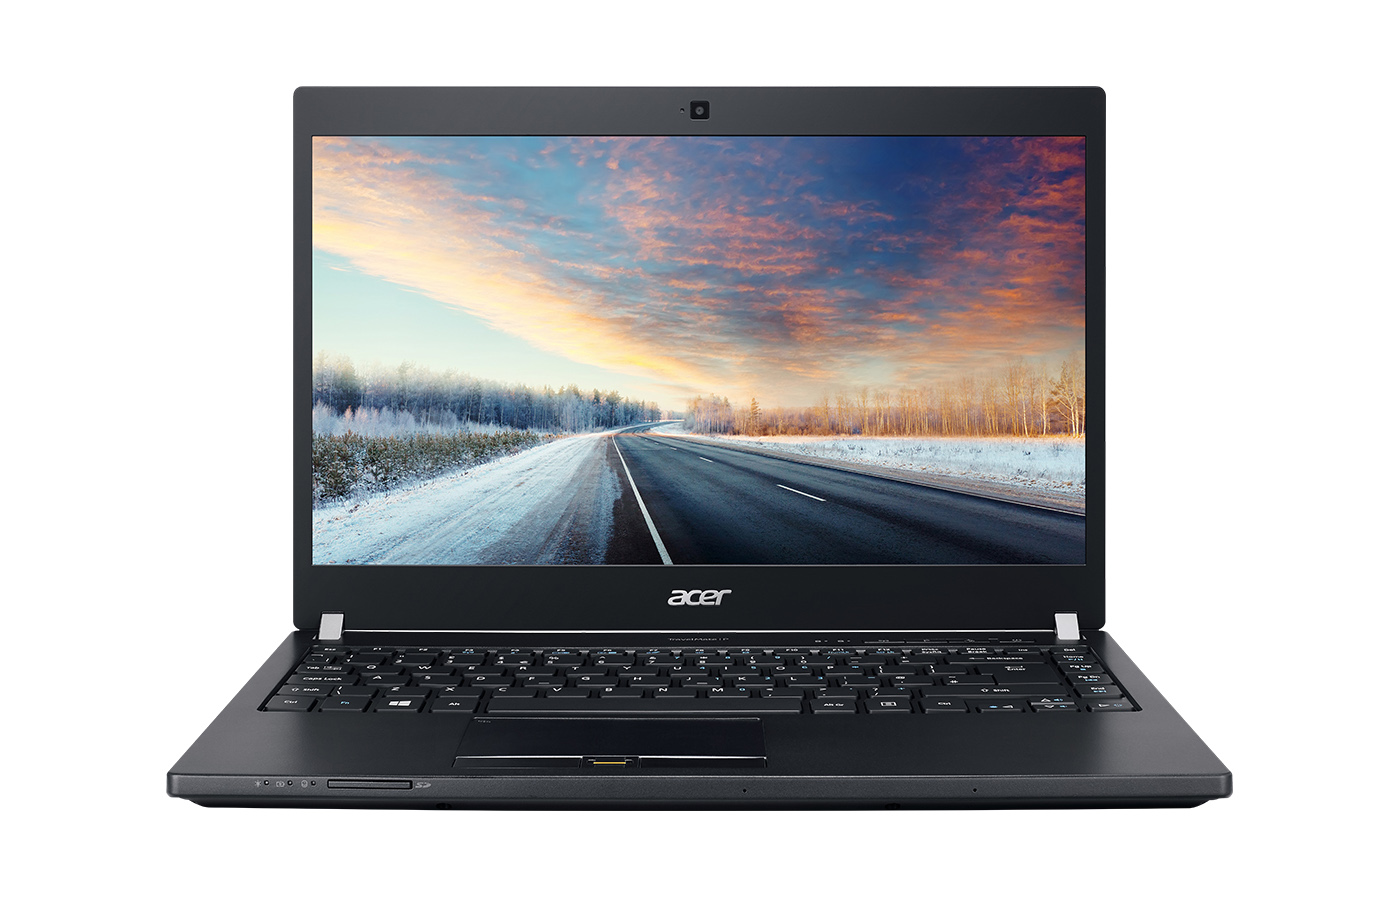 Acer introduces 'world's first' laptop with 802.11ad WiFi